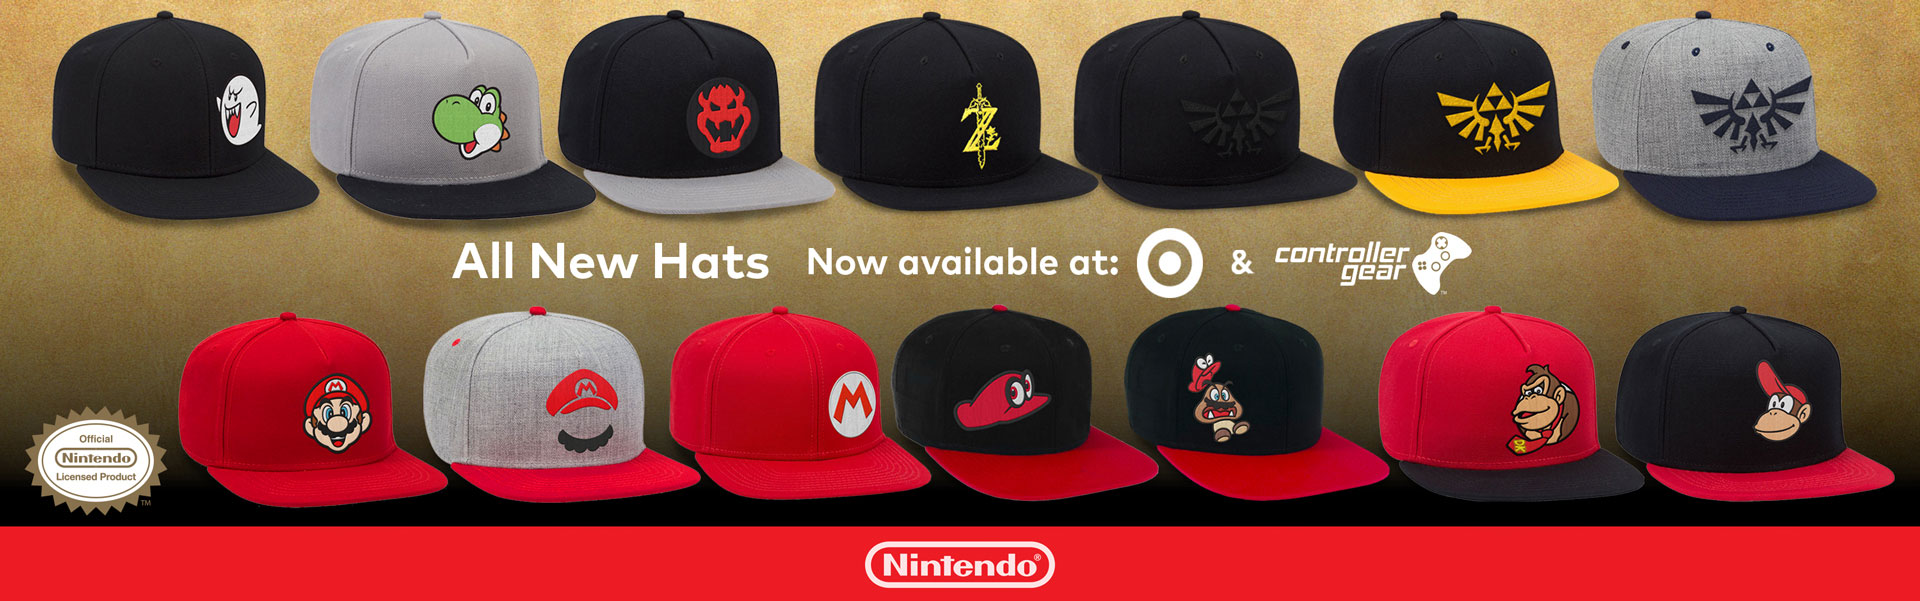 Nintendo Hats by Controller Gear at Target